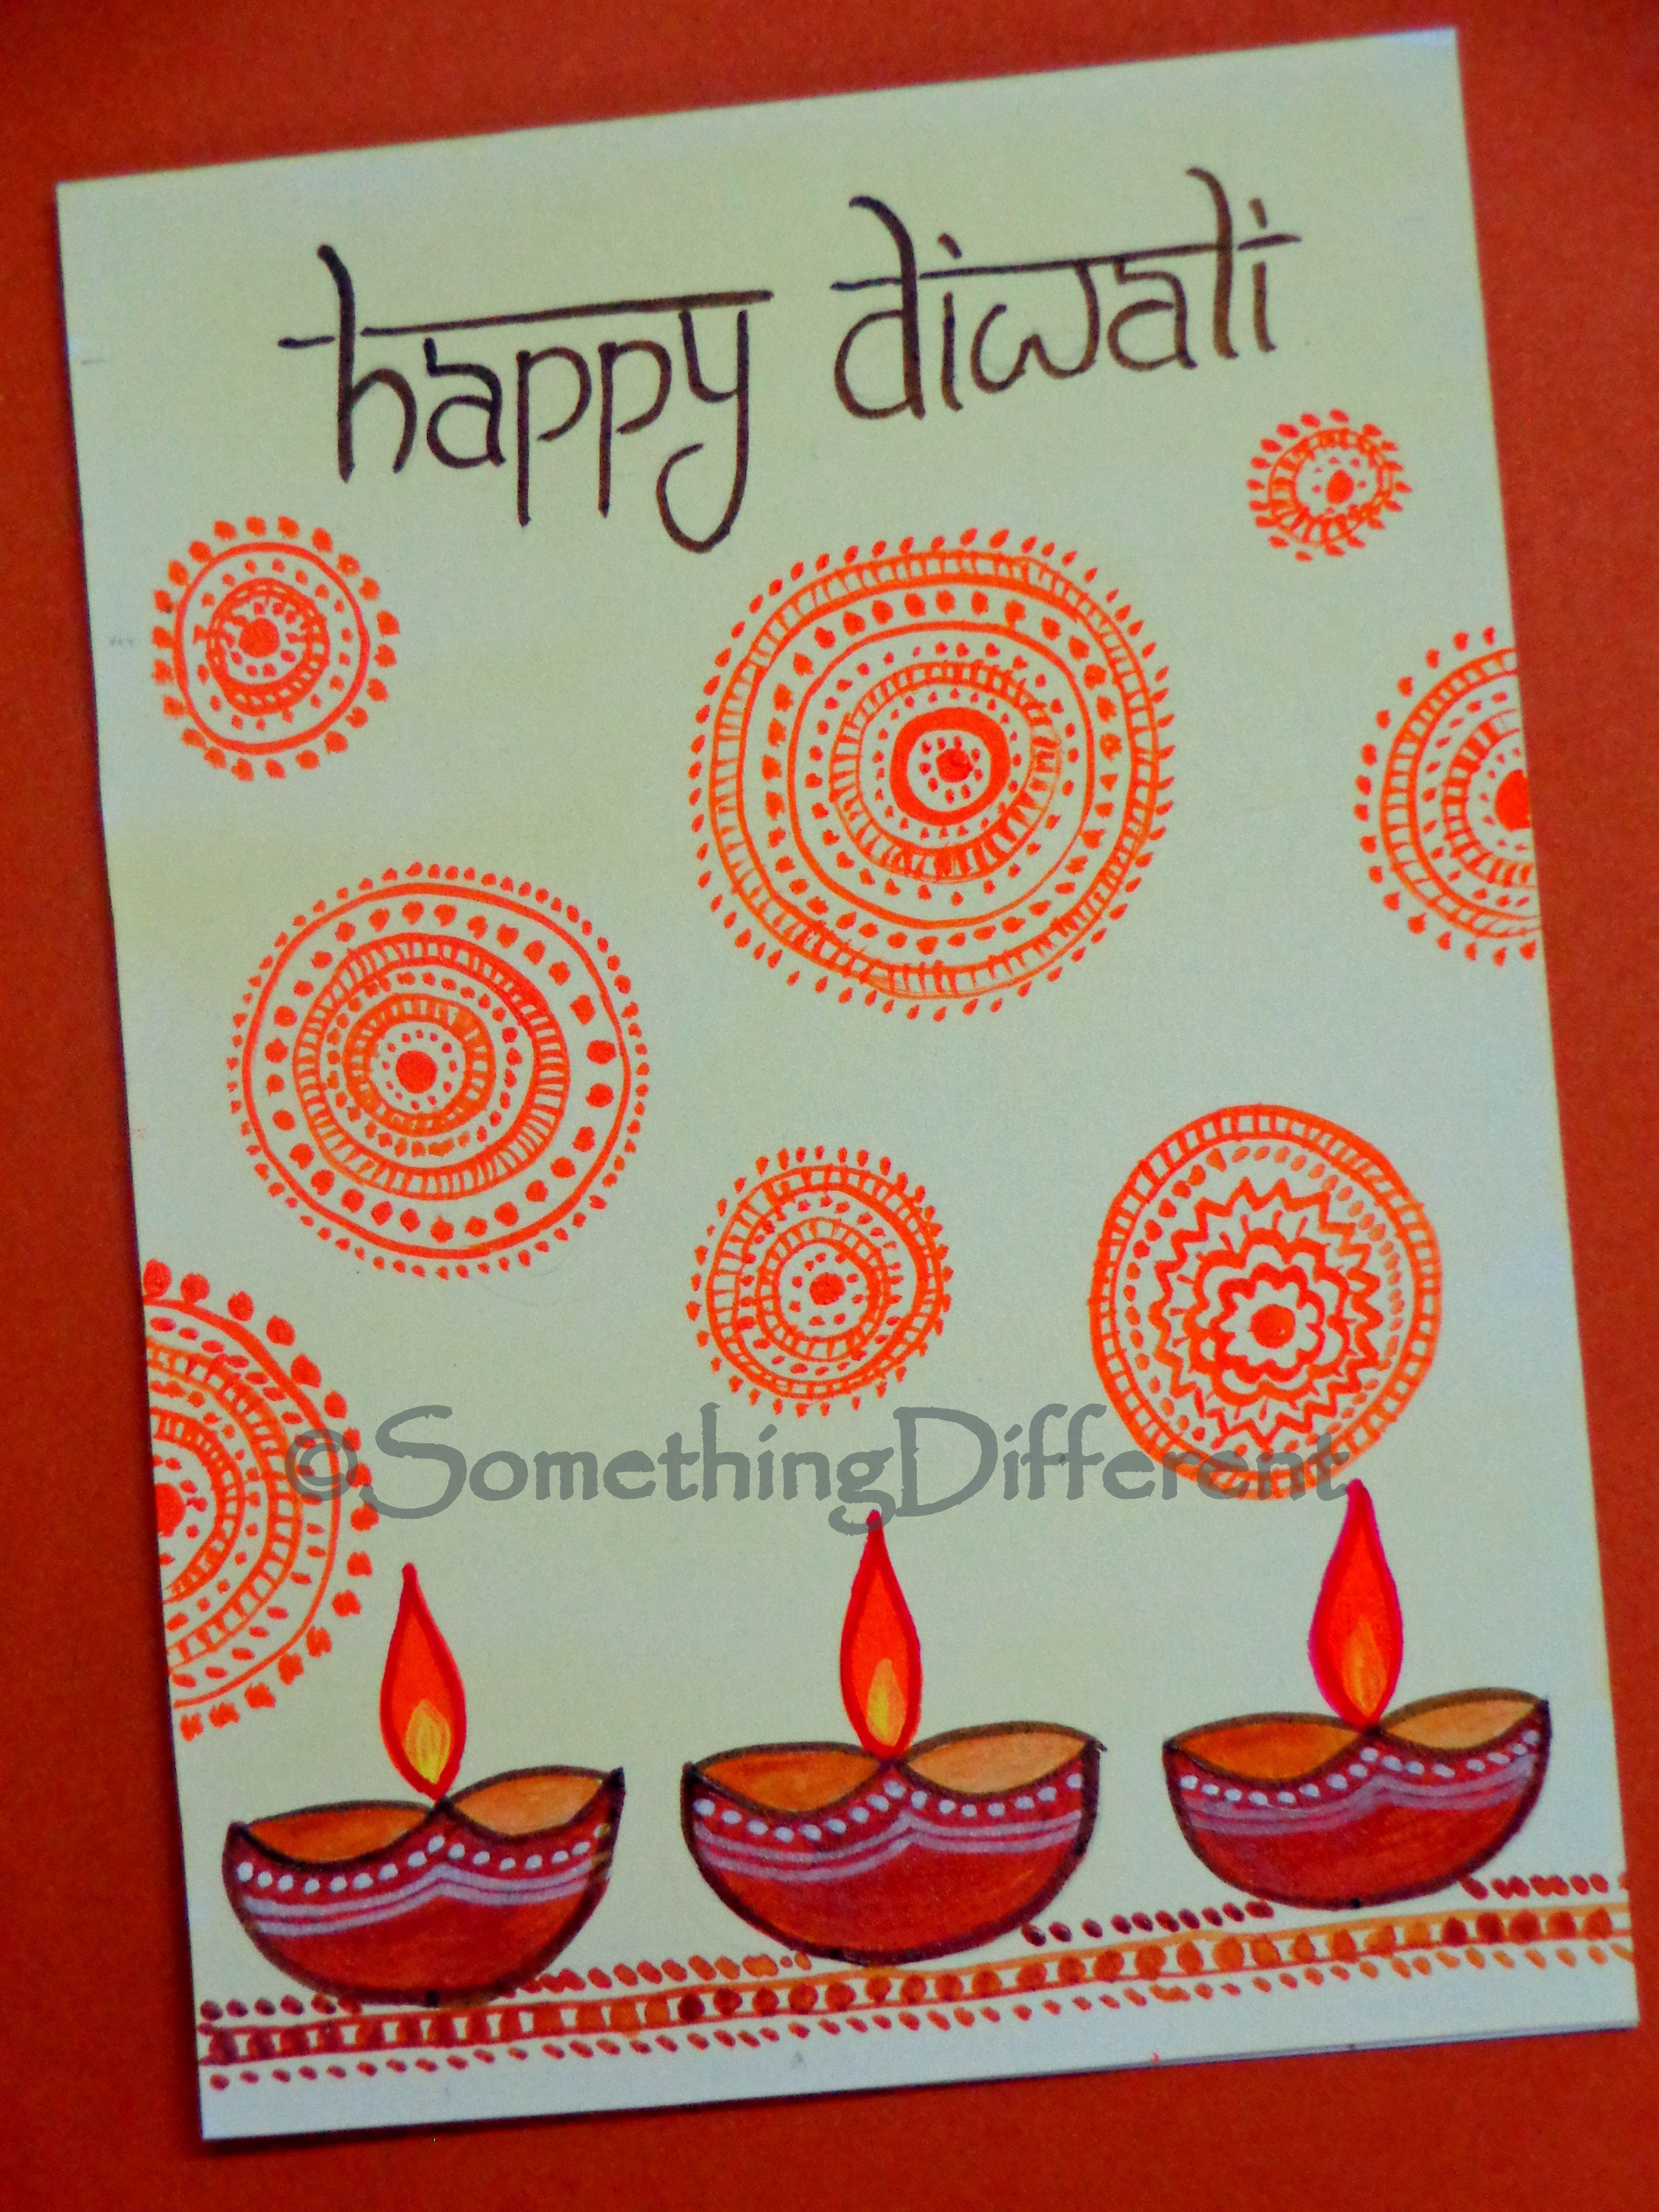 Diwali Greeting Card Diwali Greeting Cards Pinterest Diwali